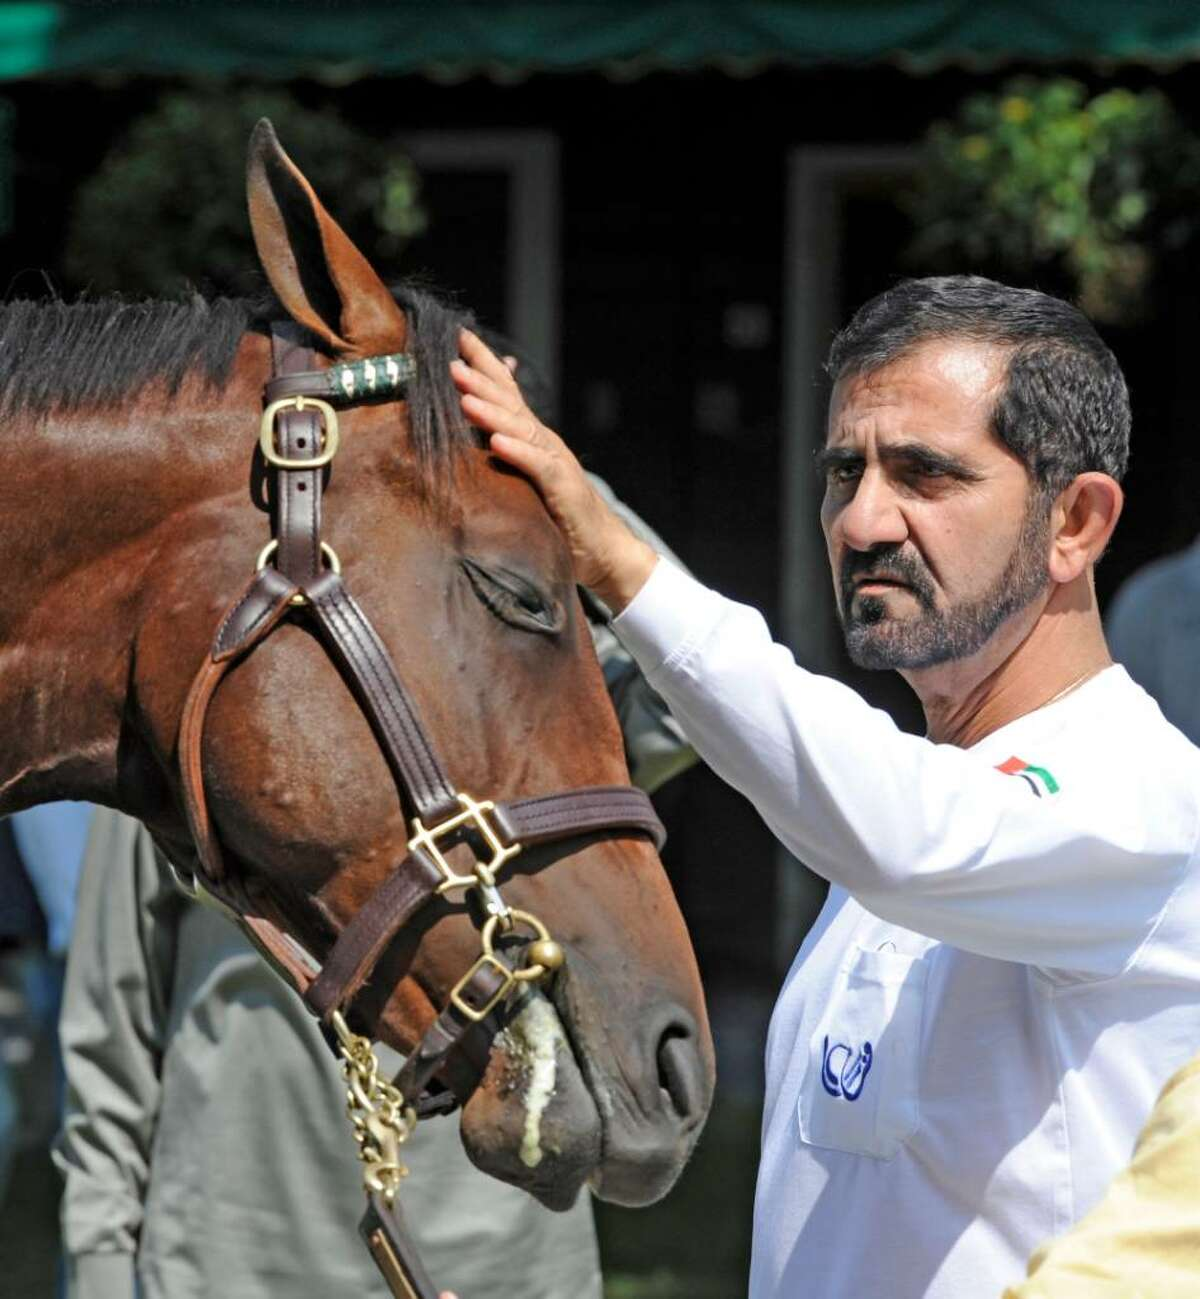 The Emir Sheikh Mohammed bin Rashid Al Maktoum shares a quiet moment with a sales yearling at the Fasig-Tipton sales area while looking over the offerings of different consigners of yearlings. (Skip Dickstein/Times Union)